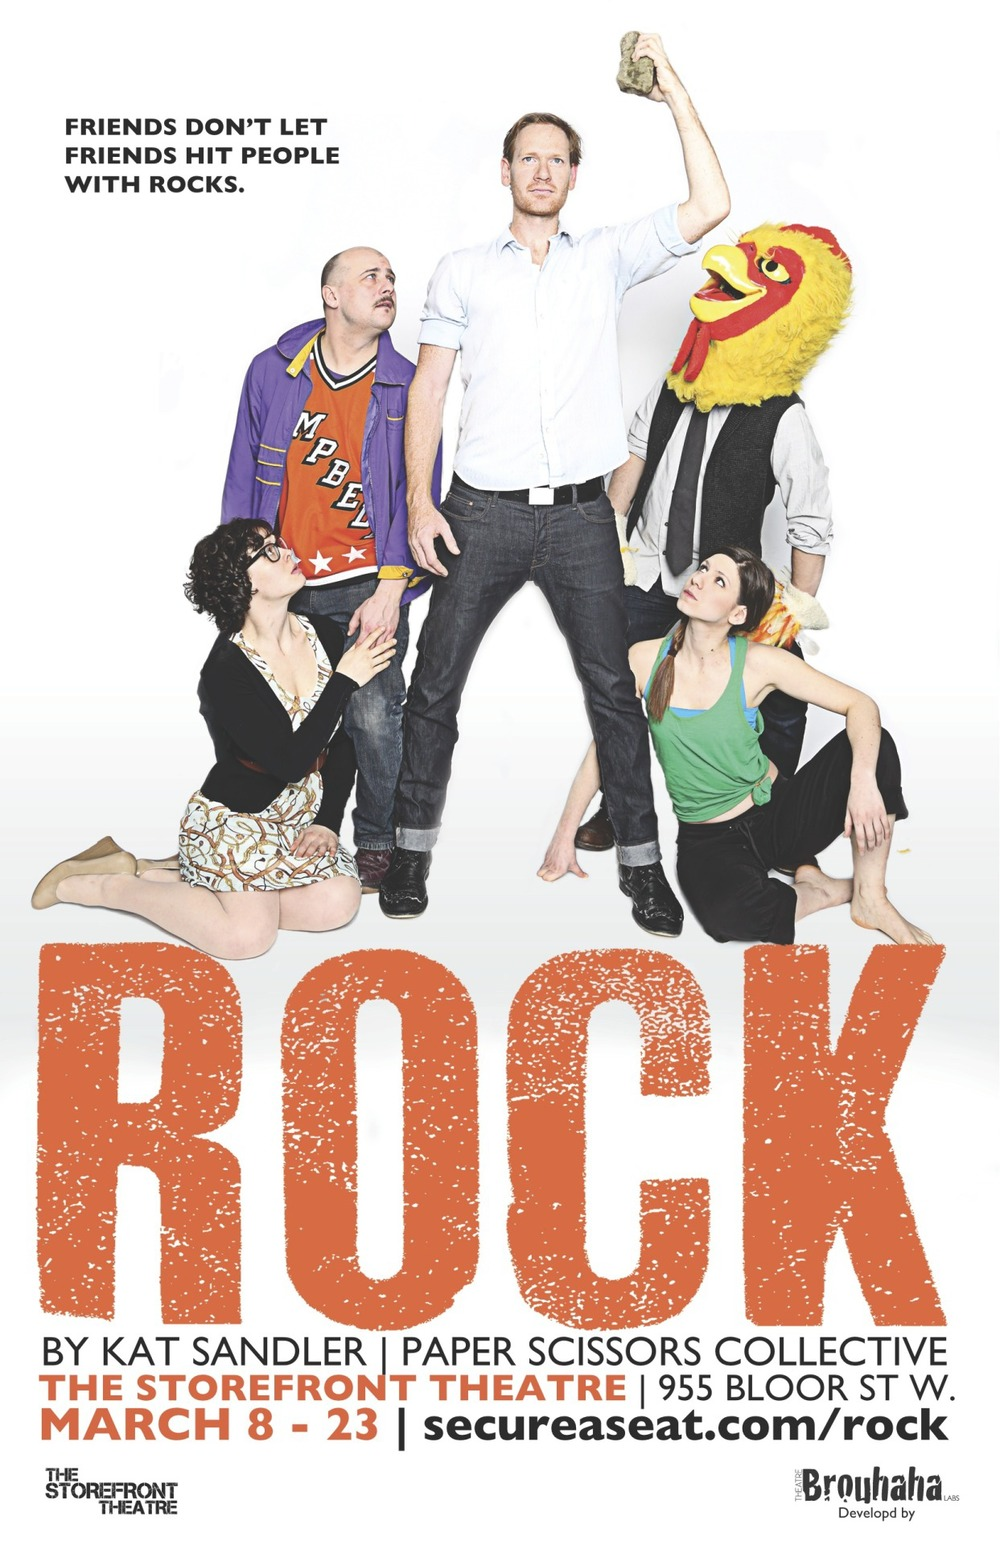 Poster for Rock by Theatre Brouhaha's Kat Sandler. Photo by Zaiden.